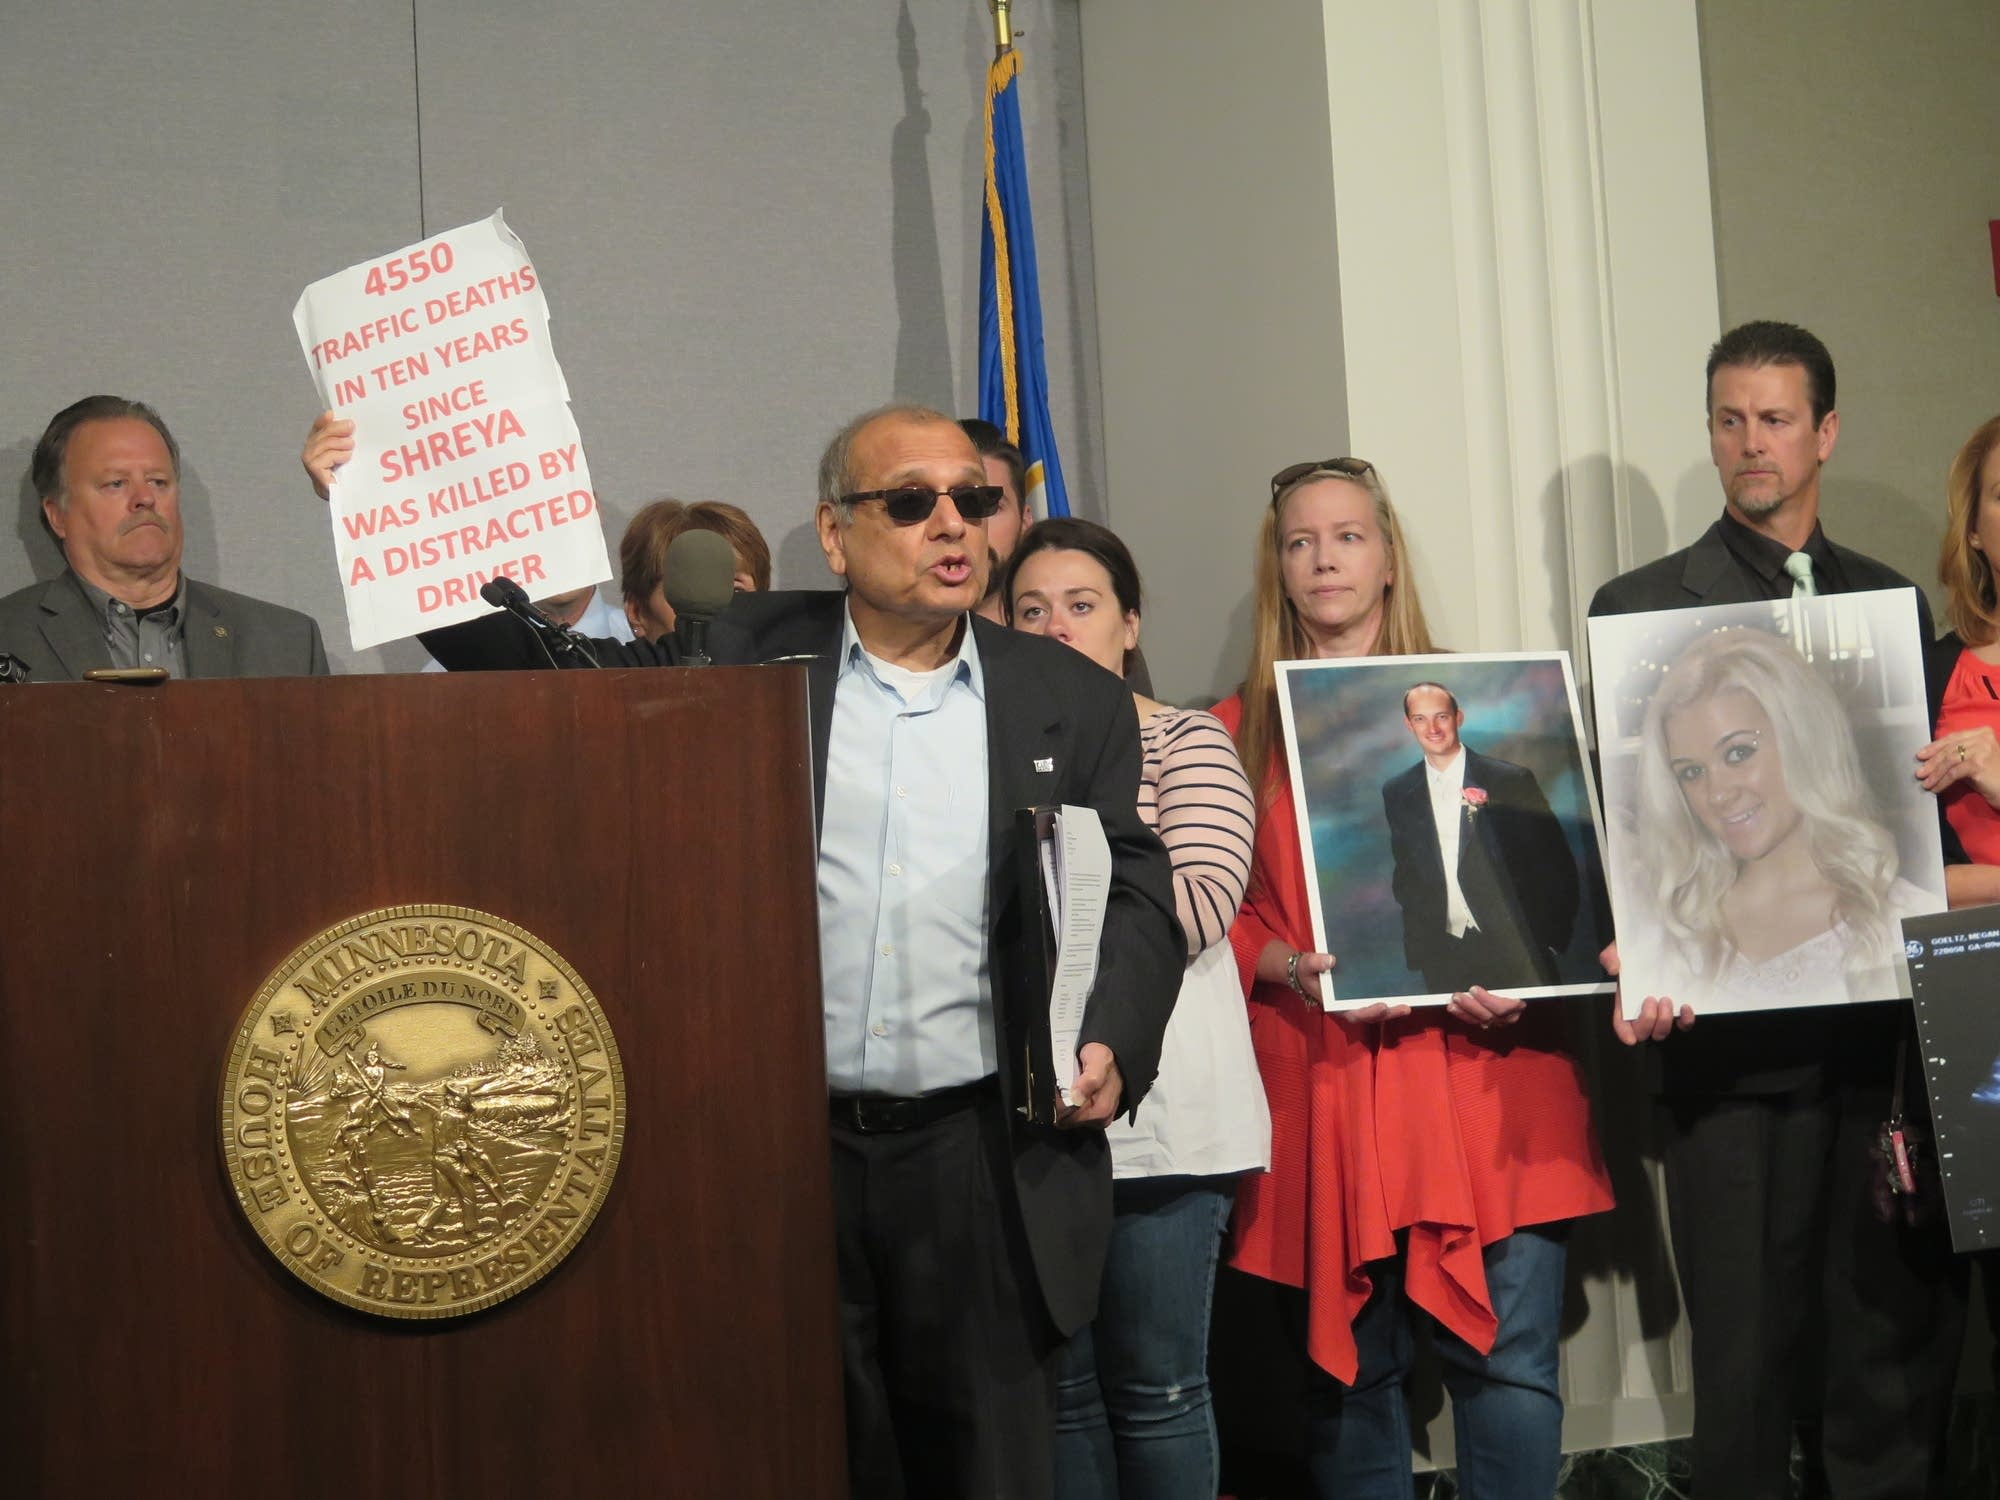 Vijay Dixit holds up a sign about distracted driving deaths.